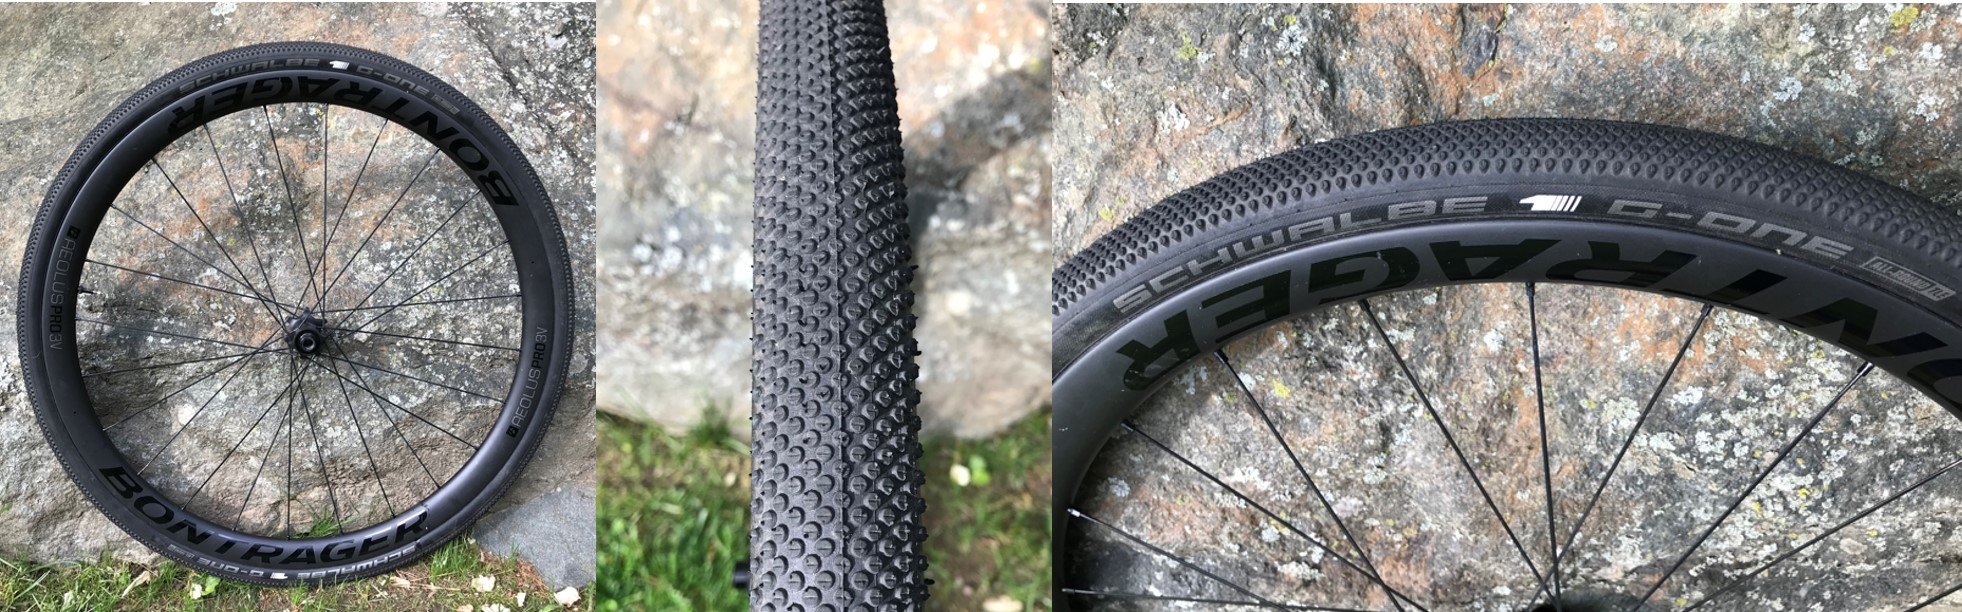 Schwalbe G-One Allround Gravel Tires